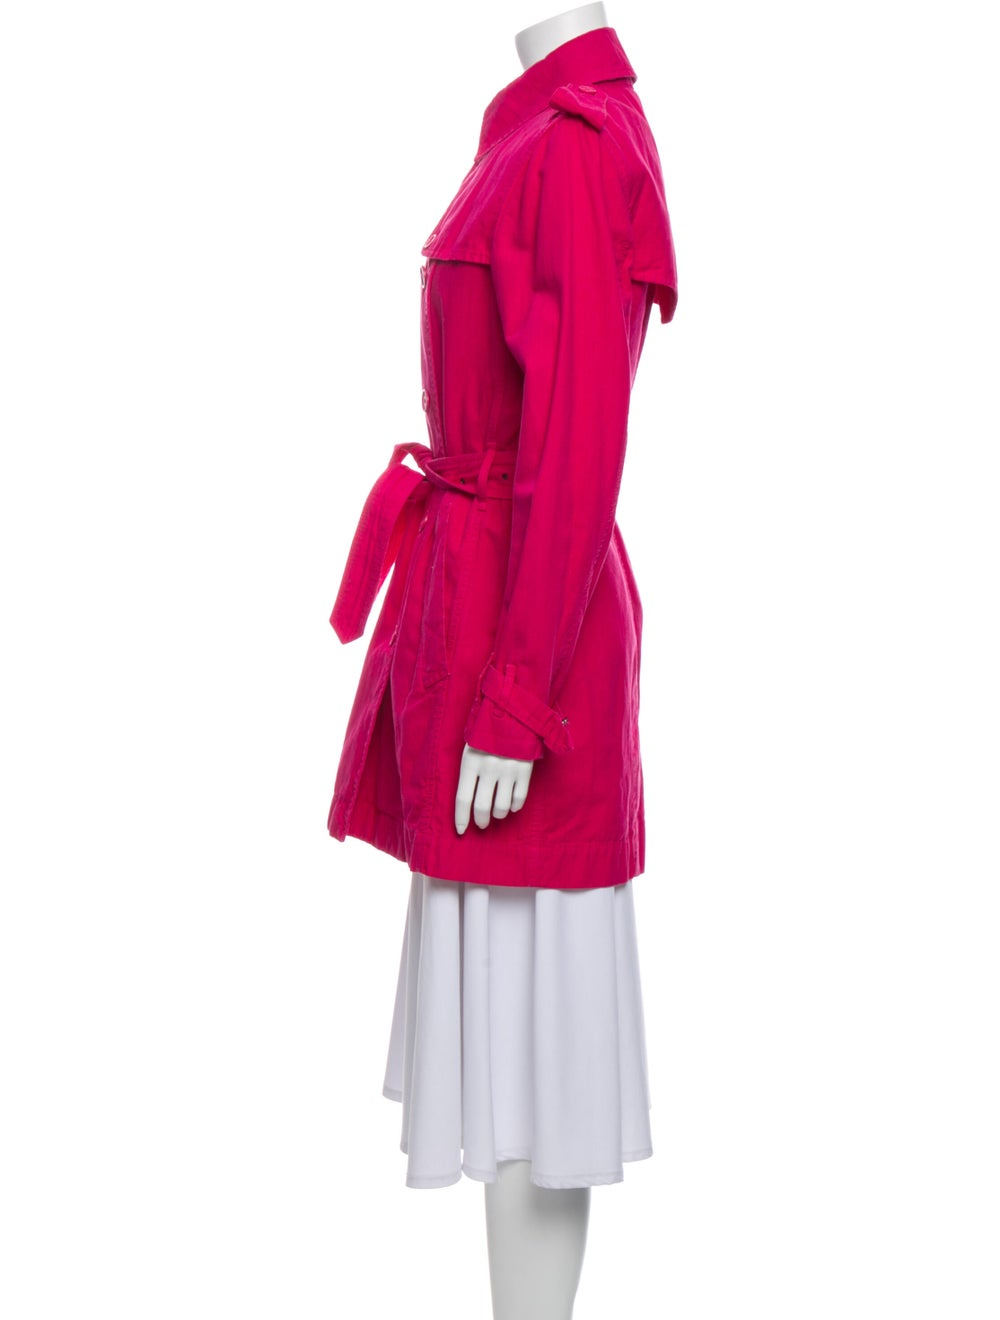 Burberry London Trench Coat Pink - image 2